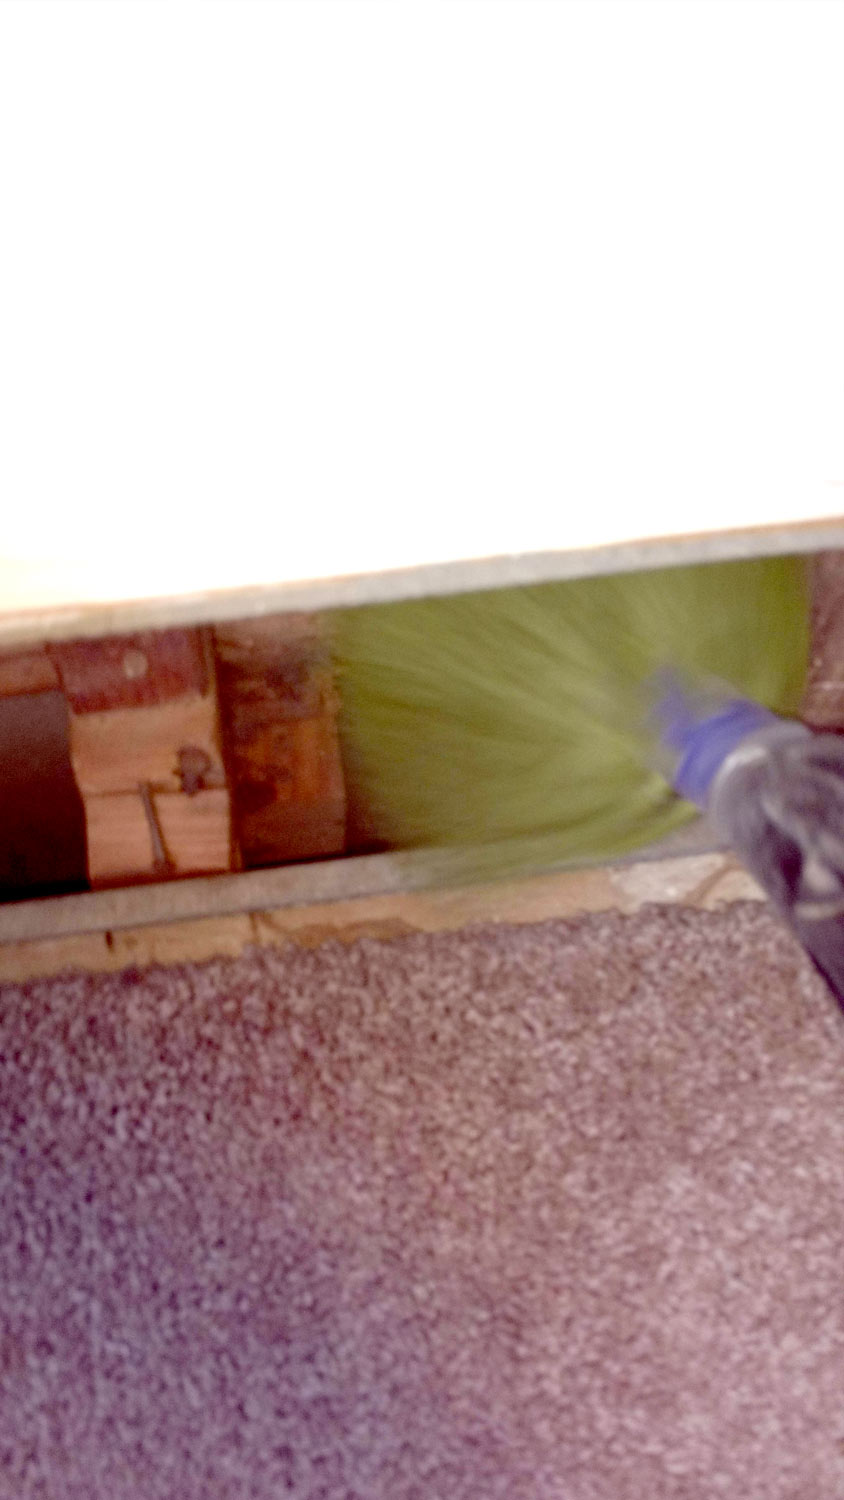 professional-air-duct-cleaning-service